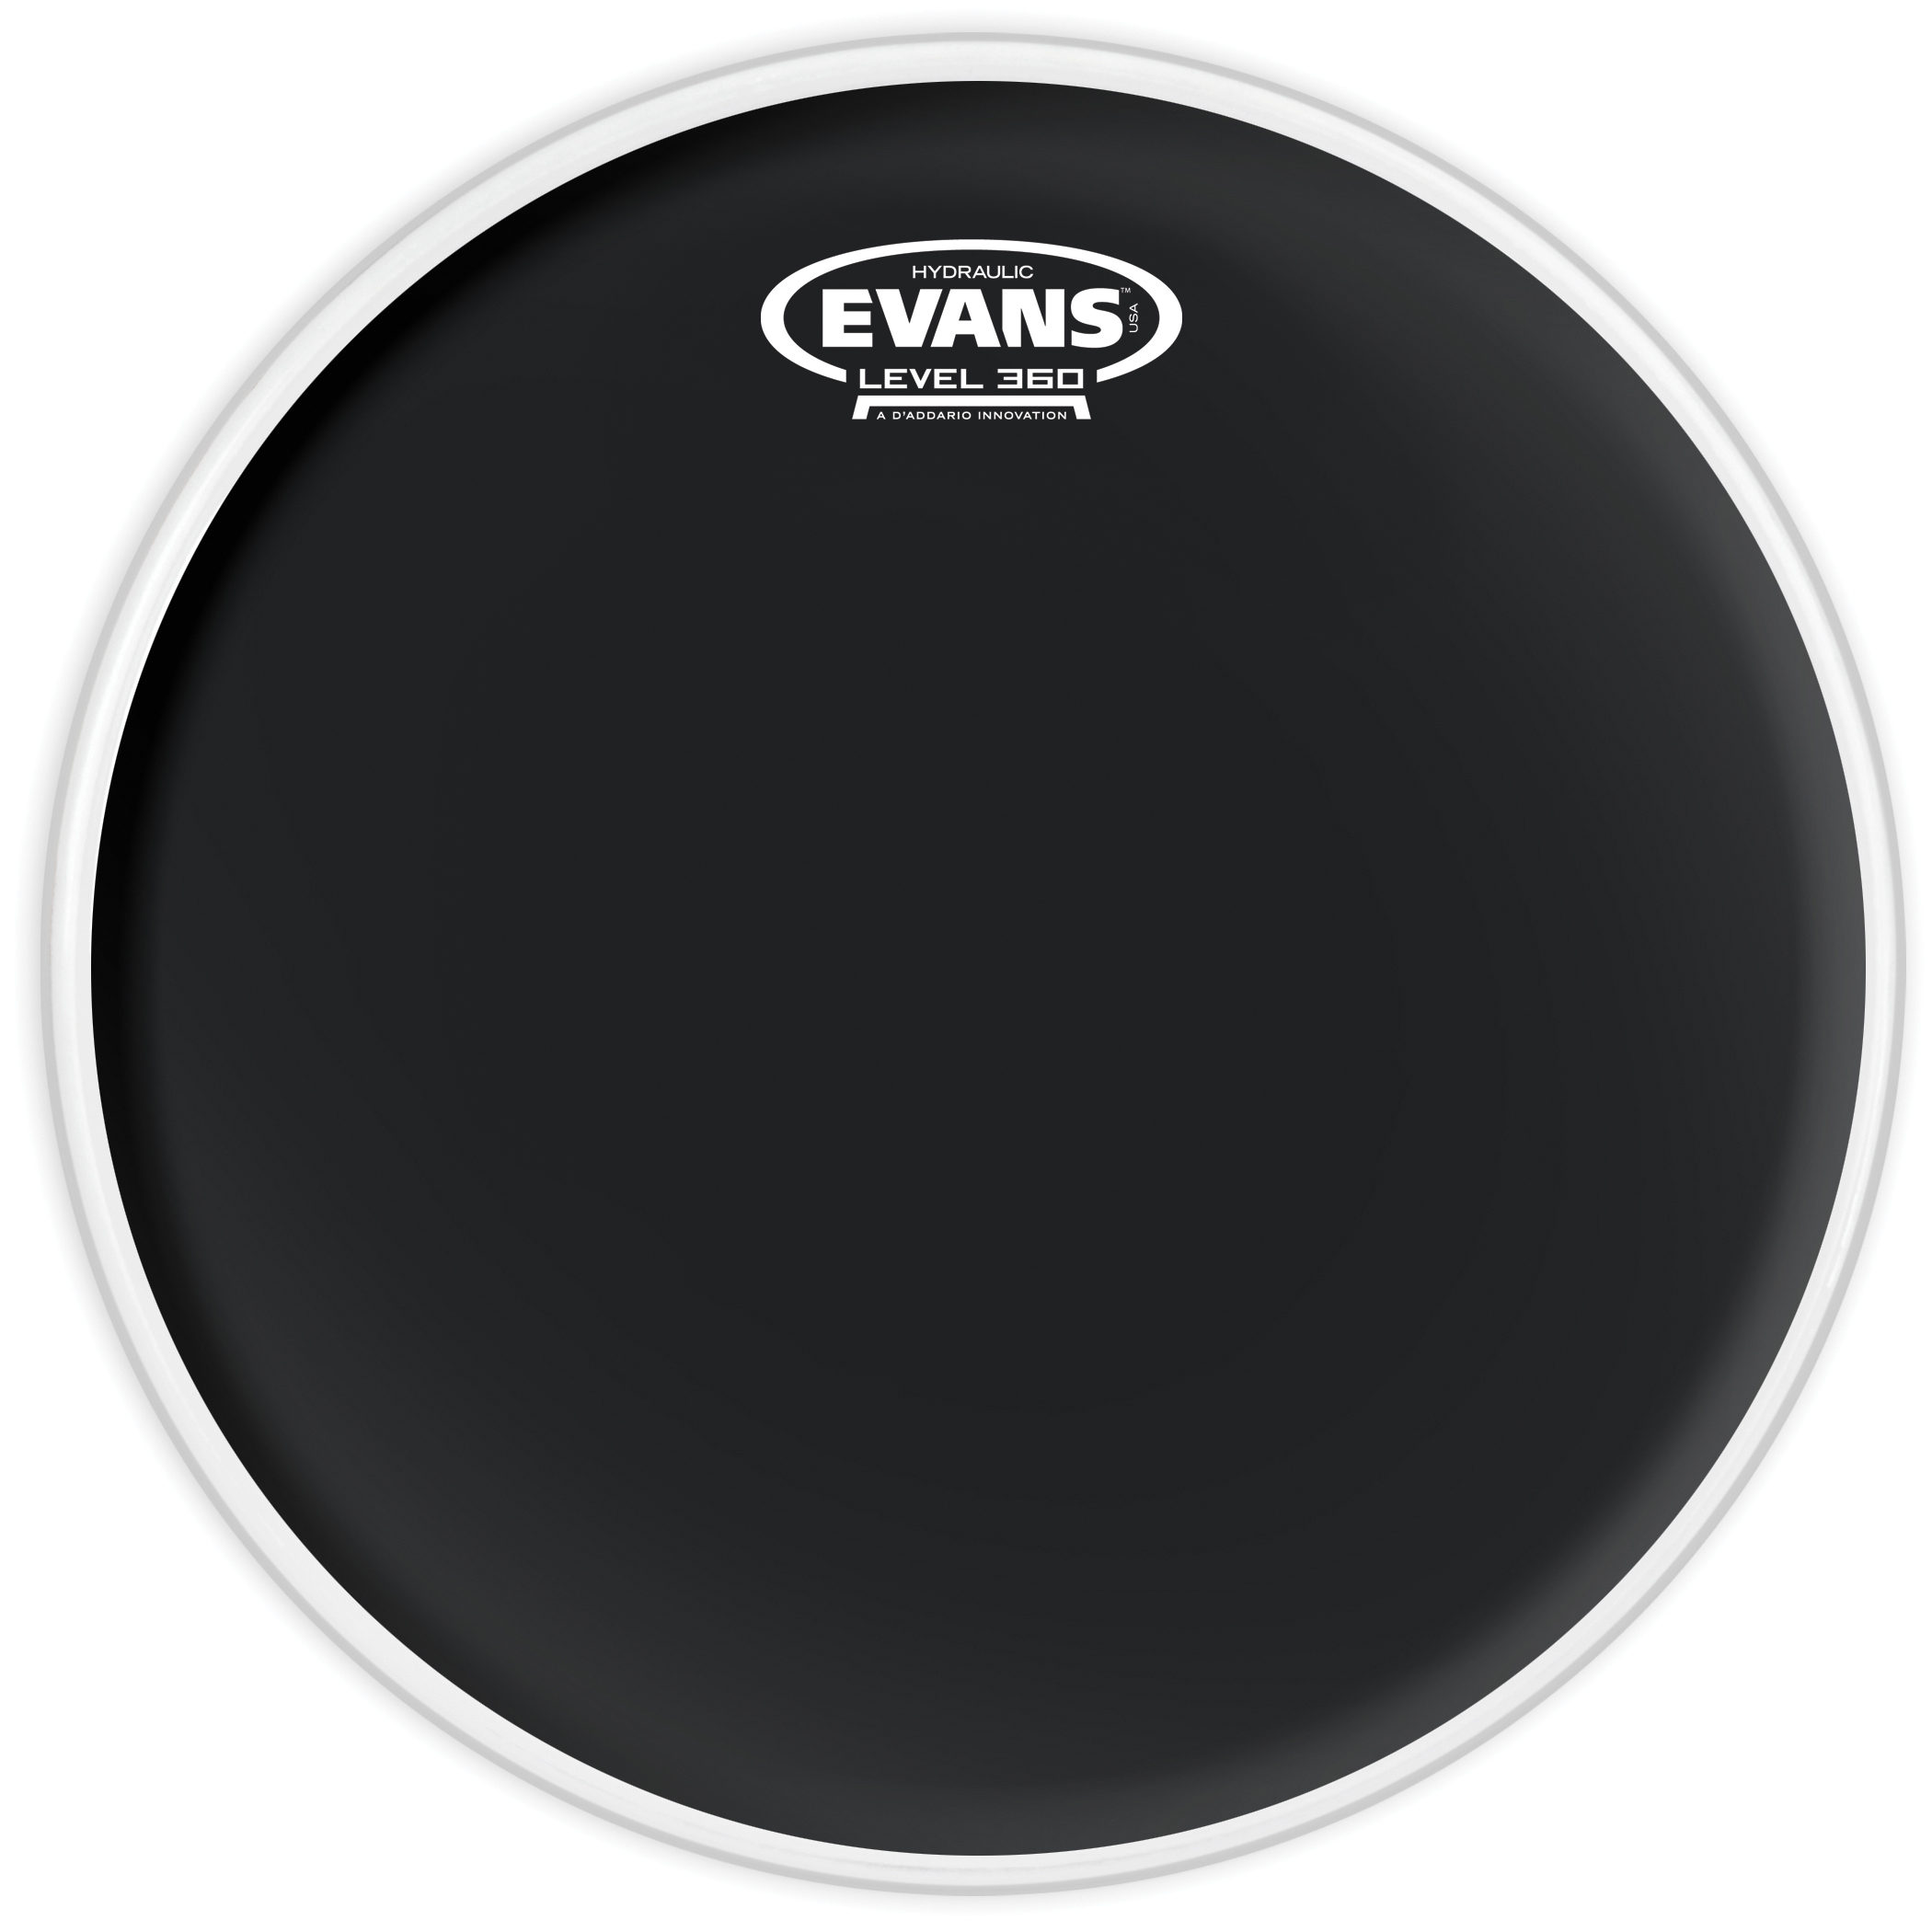 Evans Hydraulic Black Drum Head 8